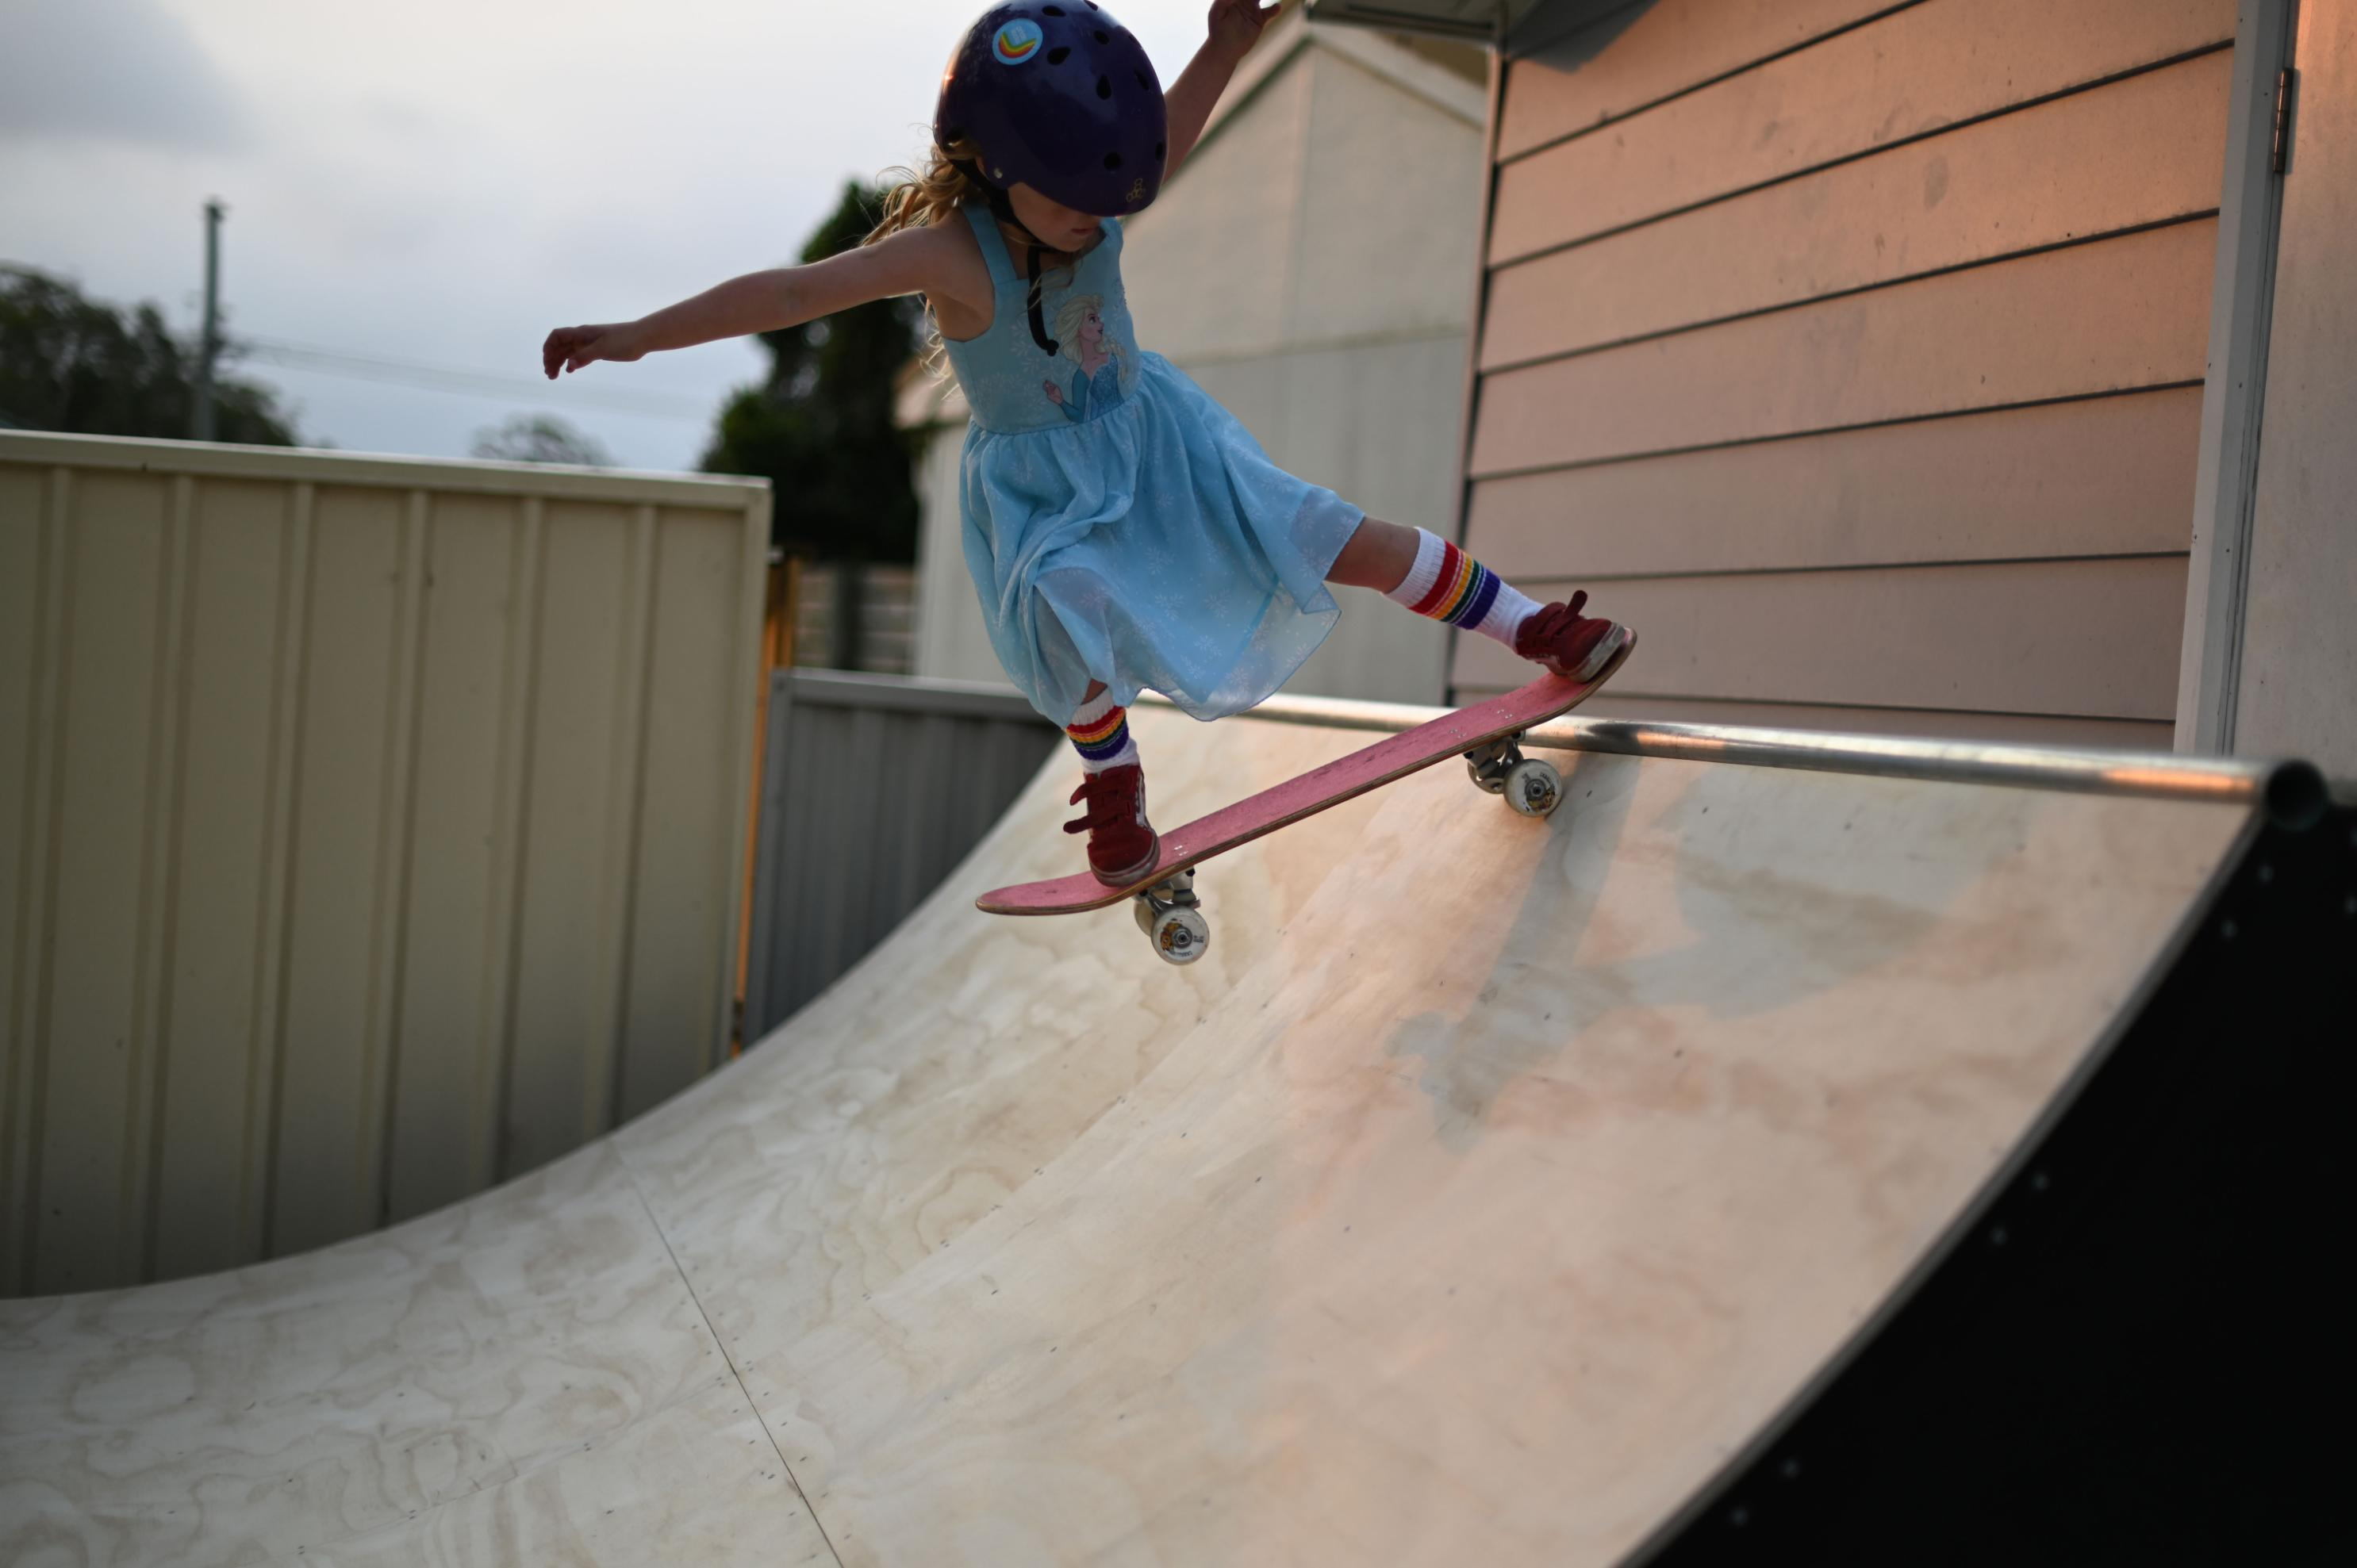 The world's next skateboard star is a 6-year-old Australian girl riding ramps double her size